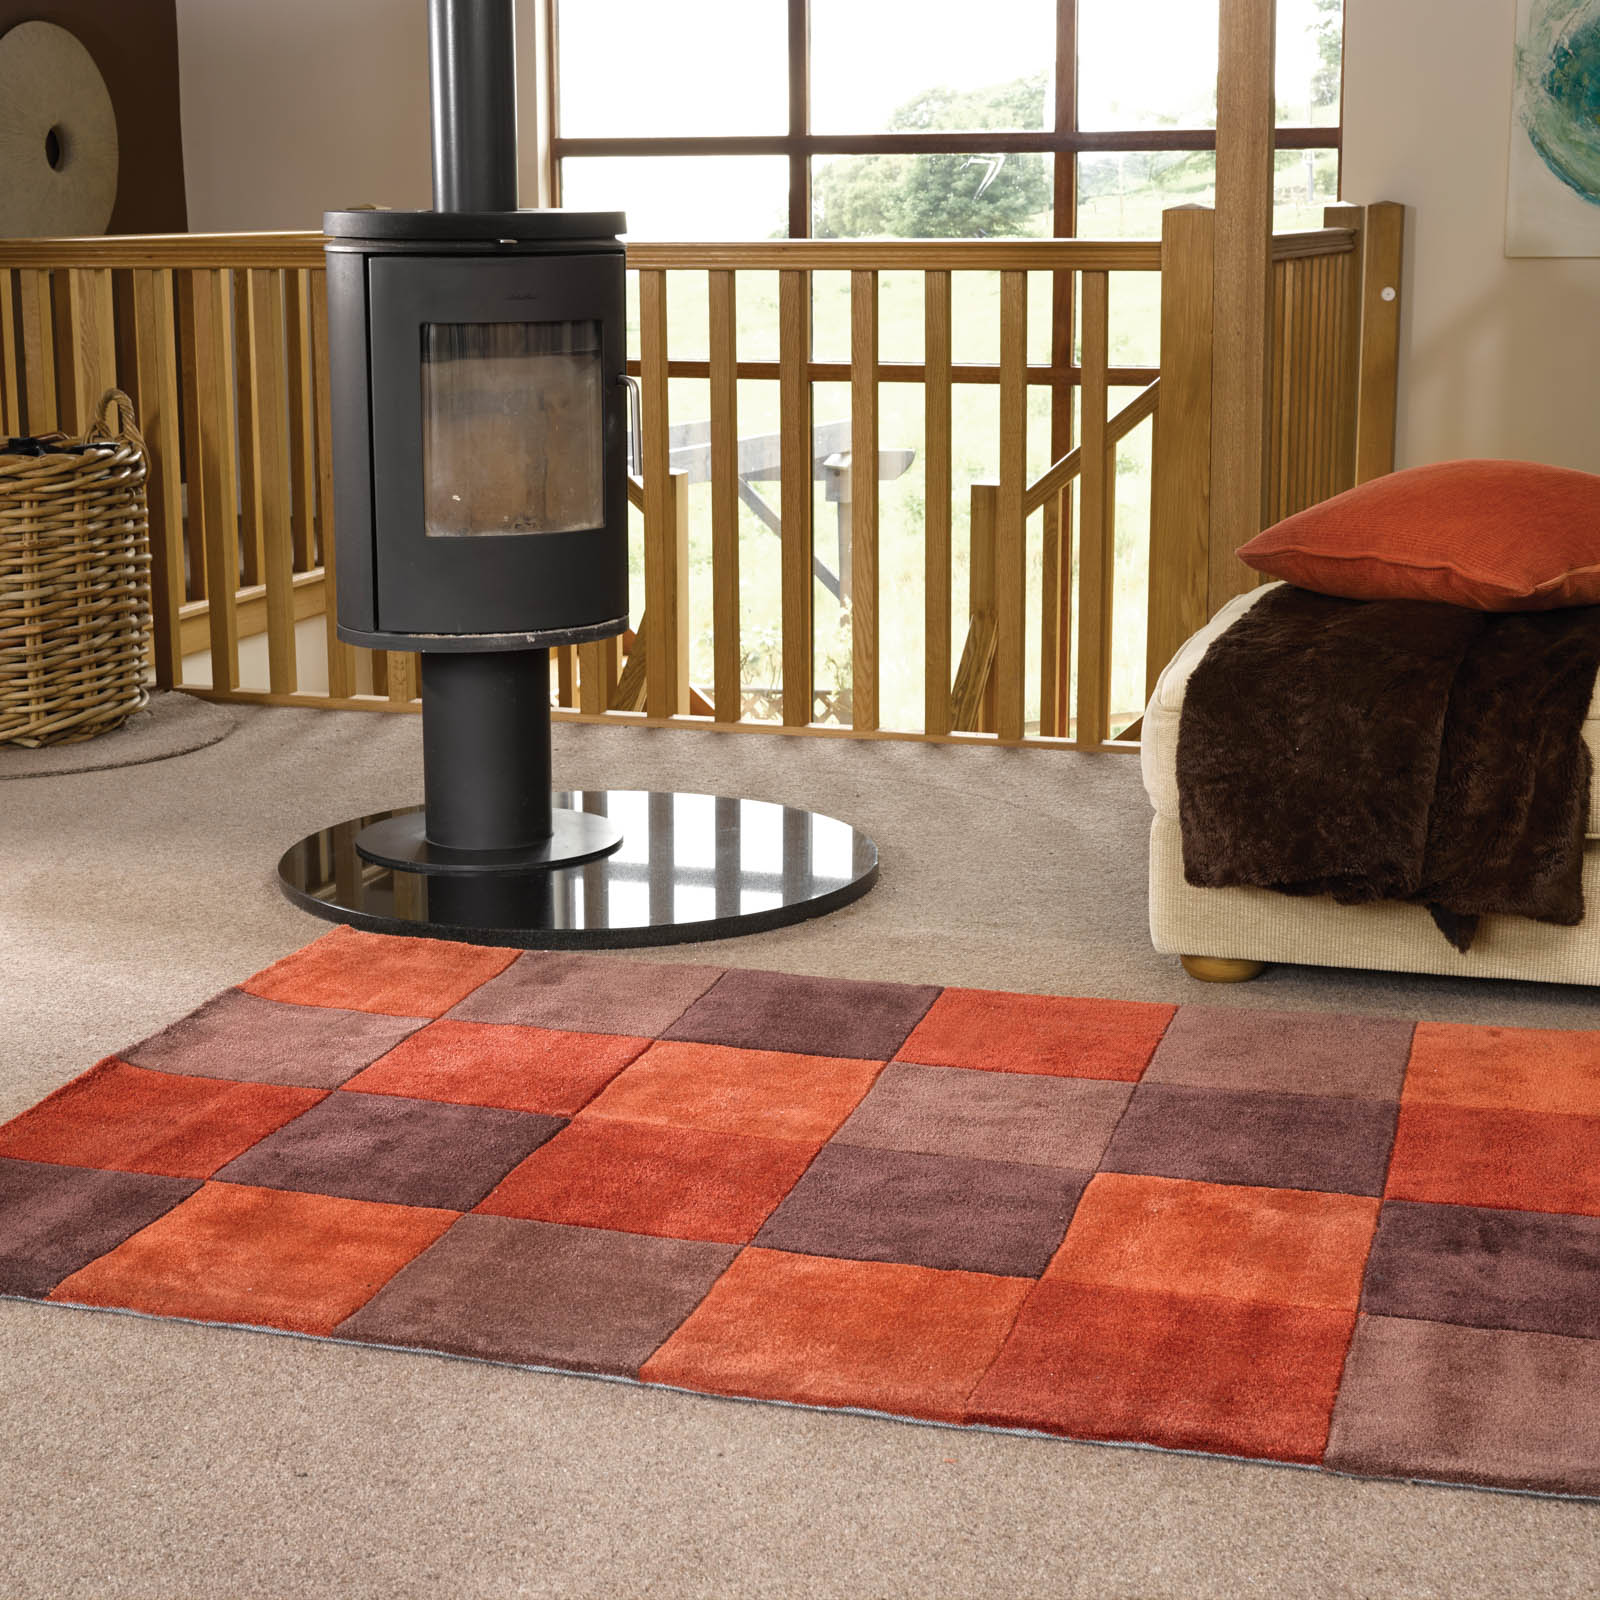 Inspire Squared rugs in Terracotta